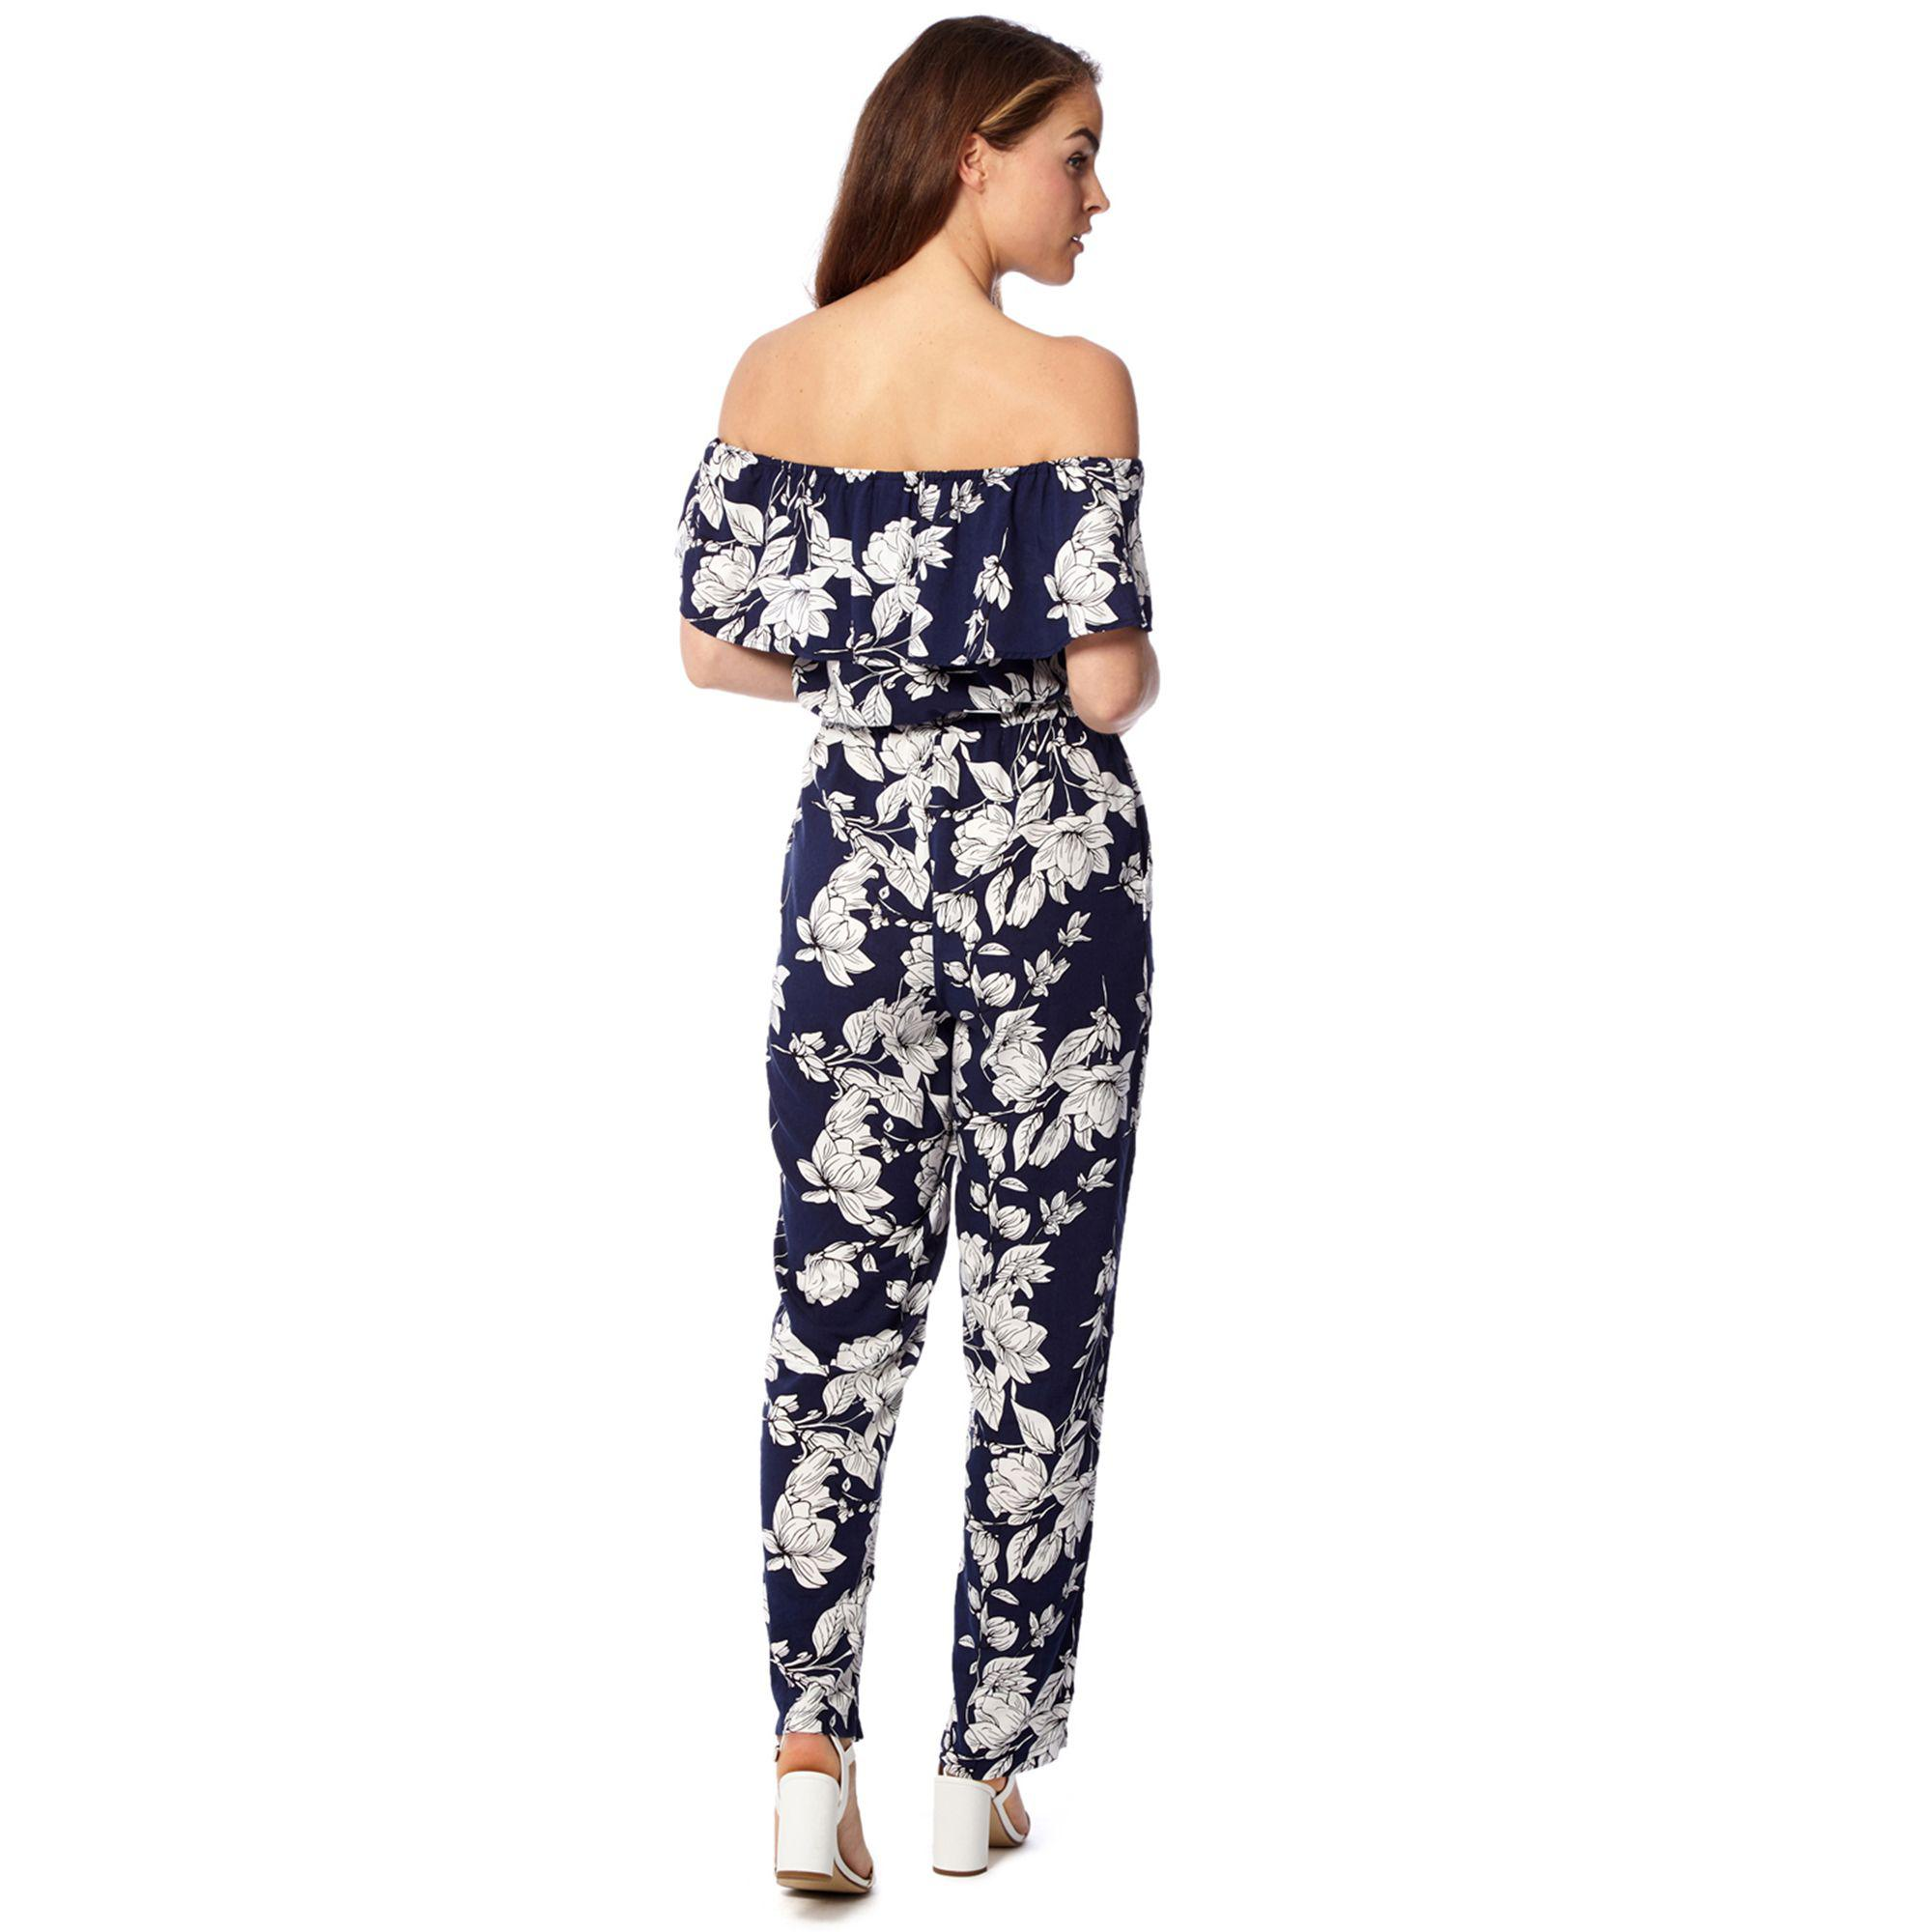 493903fcce4 Izabel London Navy Floral Print Bardot Jumpsuit in Blue - Lyst